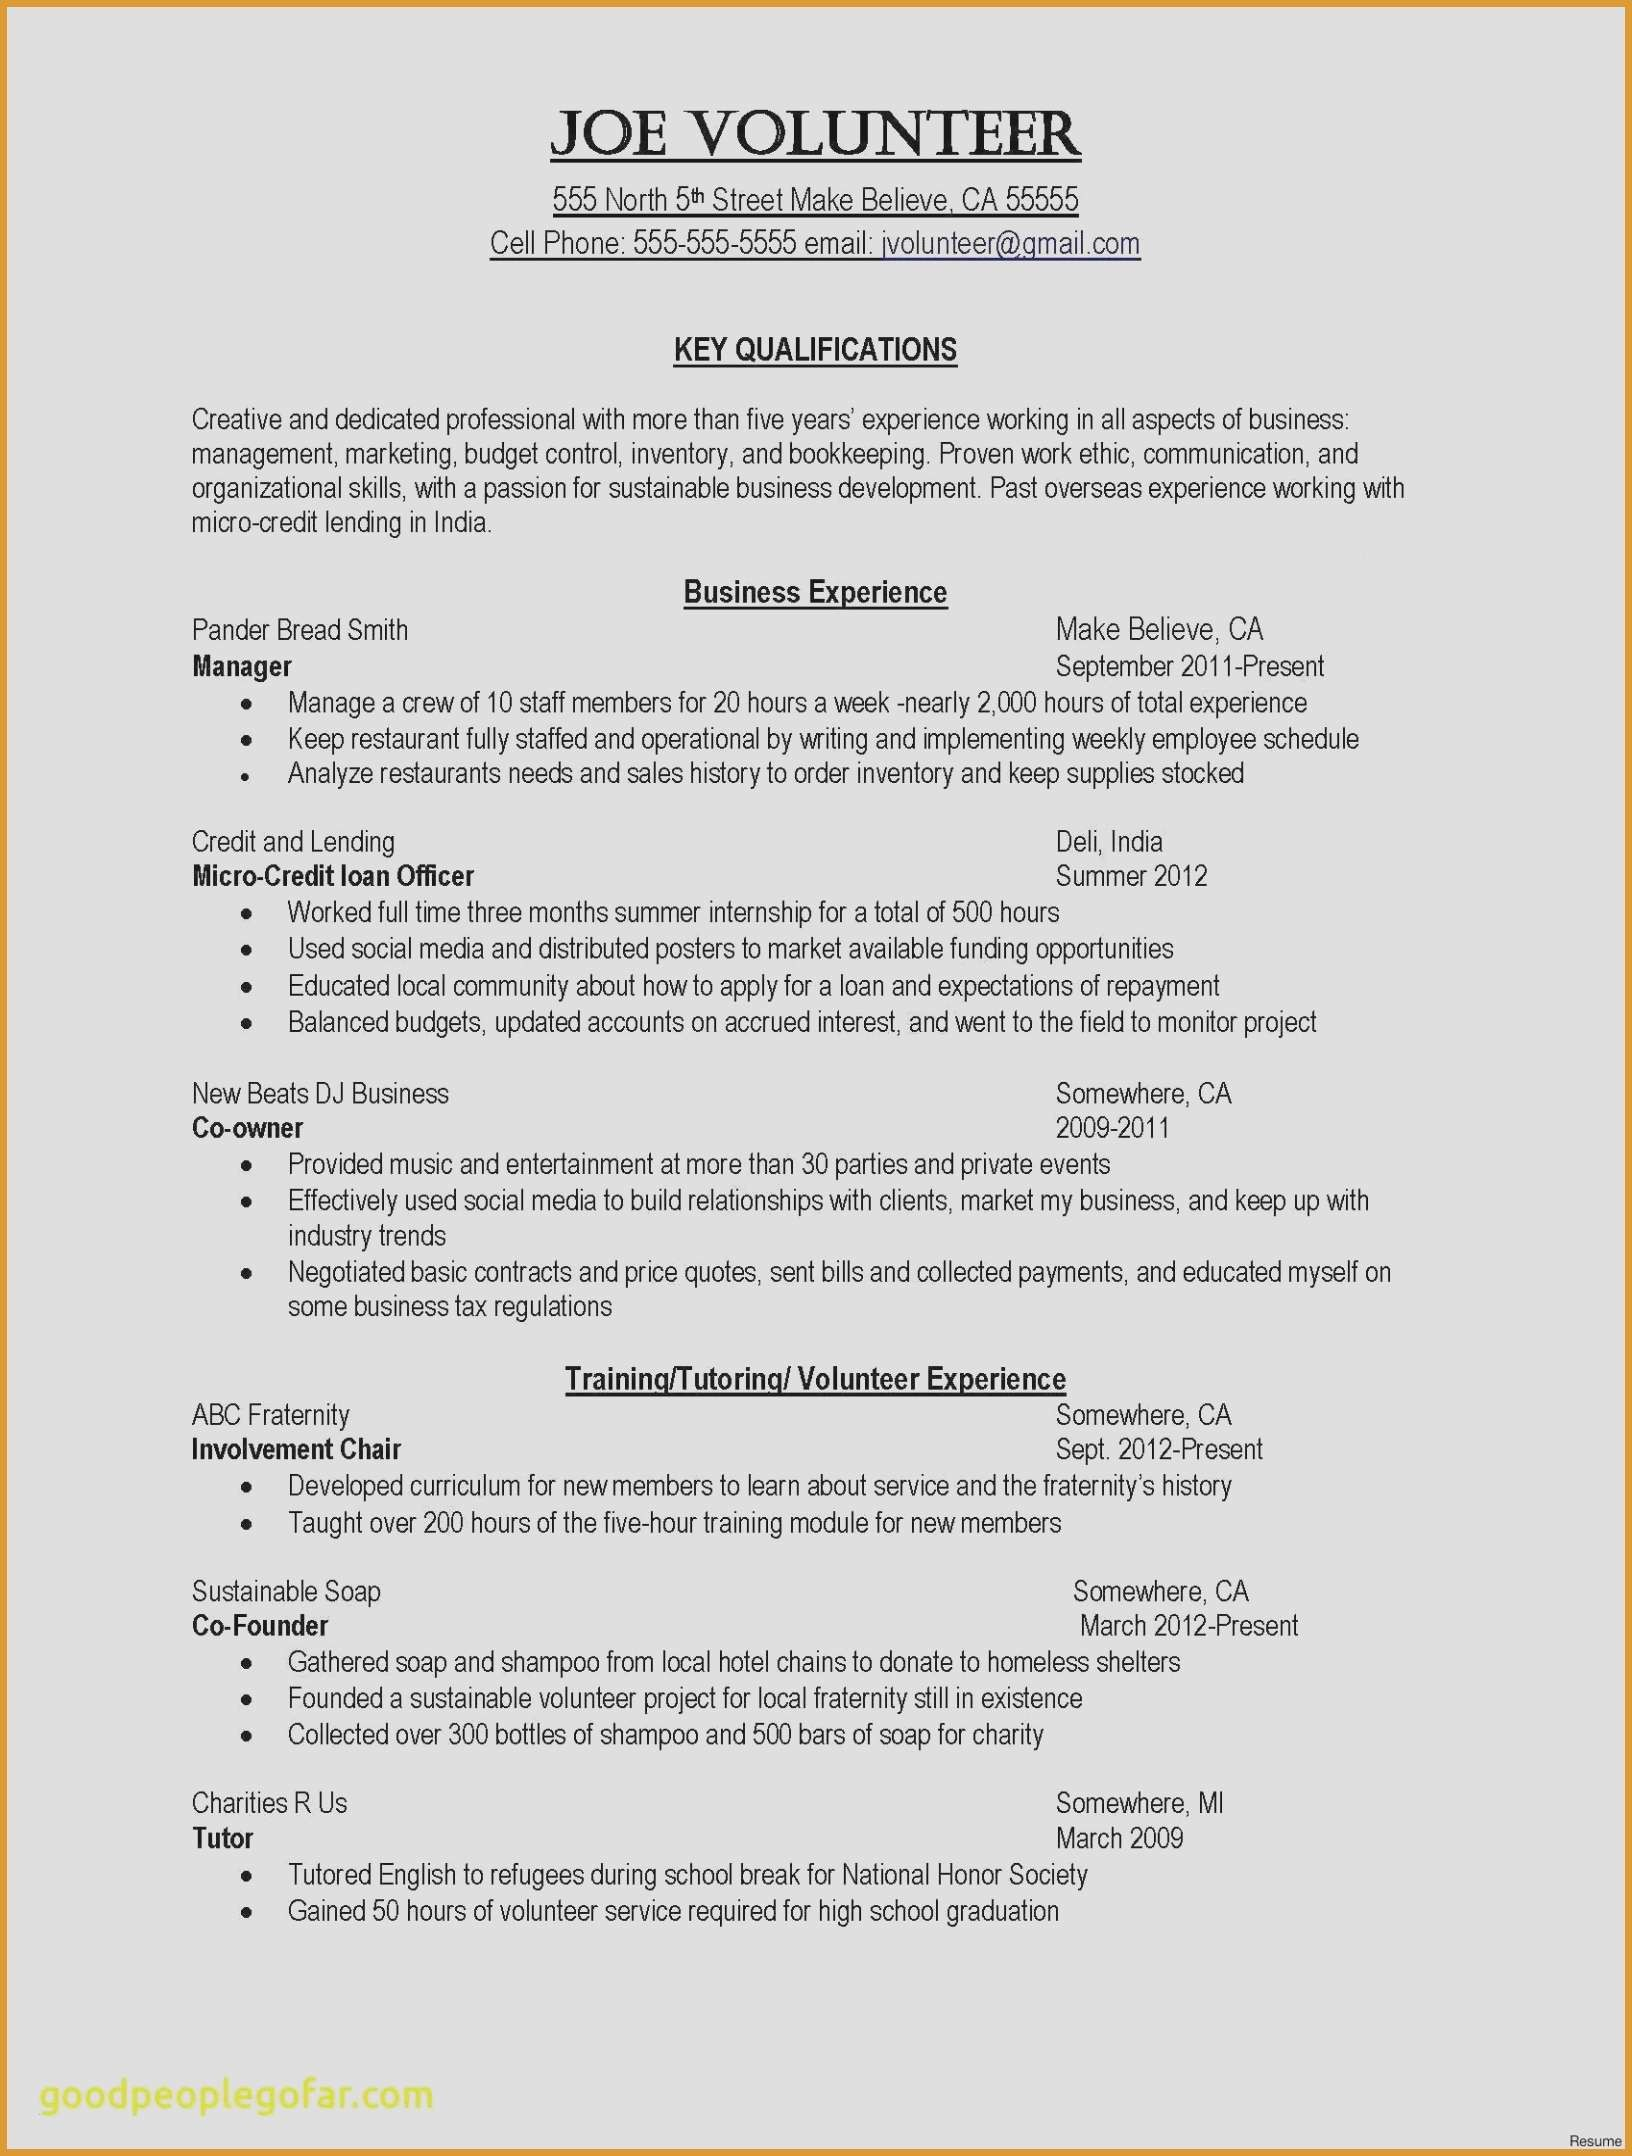 Bookkeeping Duties for Resume - Restaurant Manager Job Description Resume